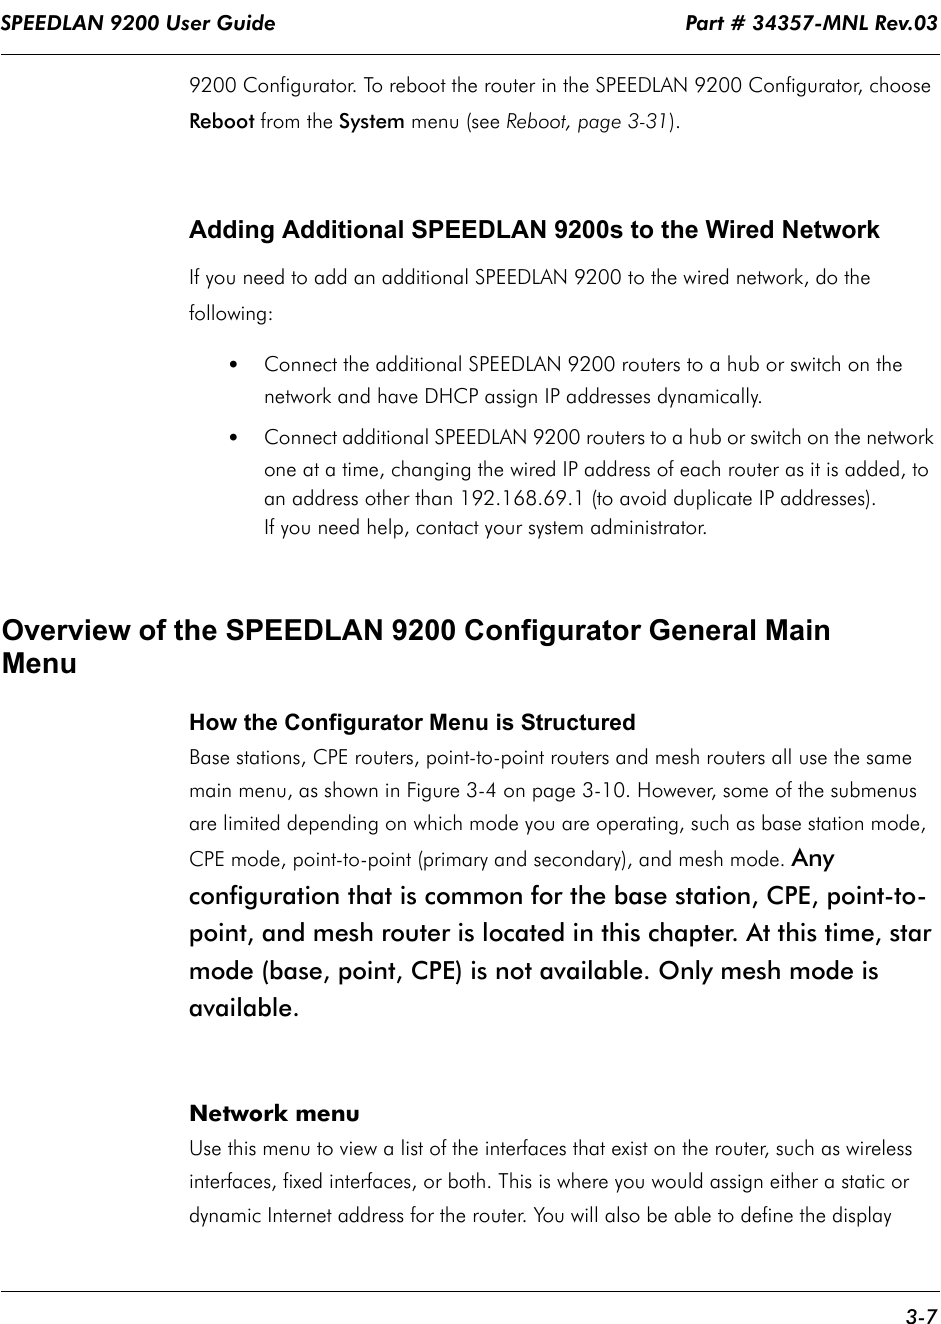 SPEEDLAN 9200 User Guide                                                                    Part # 34357-MNL Rev.03      3-7                                                                                                                                                              9200 Configurator. To reboot the router in the SPEEDLAN 9200 Configurator, choose Reboot from the System menu (see Reboot, page 3-31).Adding Additional SPEEDLAN 9200s to the Wired NetworkIf you need to add an additional SPEEDLAN 9200 to the wired network, do the following:•Connect the additional SPEEDLAN 9200 routers to a hub or switch on the network and have DHCP assign IP addresses dynamically. •Connect additional SPEEDLAN 9200 routers to a hub or switch on the network one at a time, changing the wired IP address of each router as it is added, to an address other than 192.168.69.1 (to avoid duplicate IP addresses).  If you need help, contact your system administrator.Overview of the SPEEDLAN 9200 Configurator General Main MenuHow the Configurator Menu is StructuredBase stations, CPE routers, point-to-point routers and mesh routers all use the same main menu, as shown in Figure 3-4 on page 3-10. However, some of the submenus are limited depending on which mode you are operating, such as base station mode, CPE mode, point-to-point (primary and secondary), and mesh mode. Any configuration that is common for the base station, CPE, point-to-point, and mesh router is located in this chapter. At this time, star mode (base, point, CPE) is not available. Only mesh mode is available.  Network menuUse this menu to view a list of the interfaces that exist on the router, such as wireless interfaces, fixed interfaces, or both. This is where you would assign either a static or dynamic Internet address for the router. You will also be able to define the display